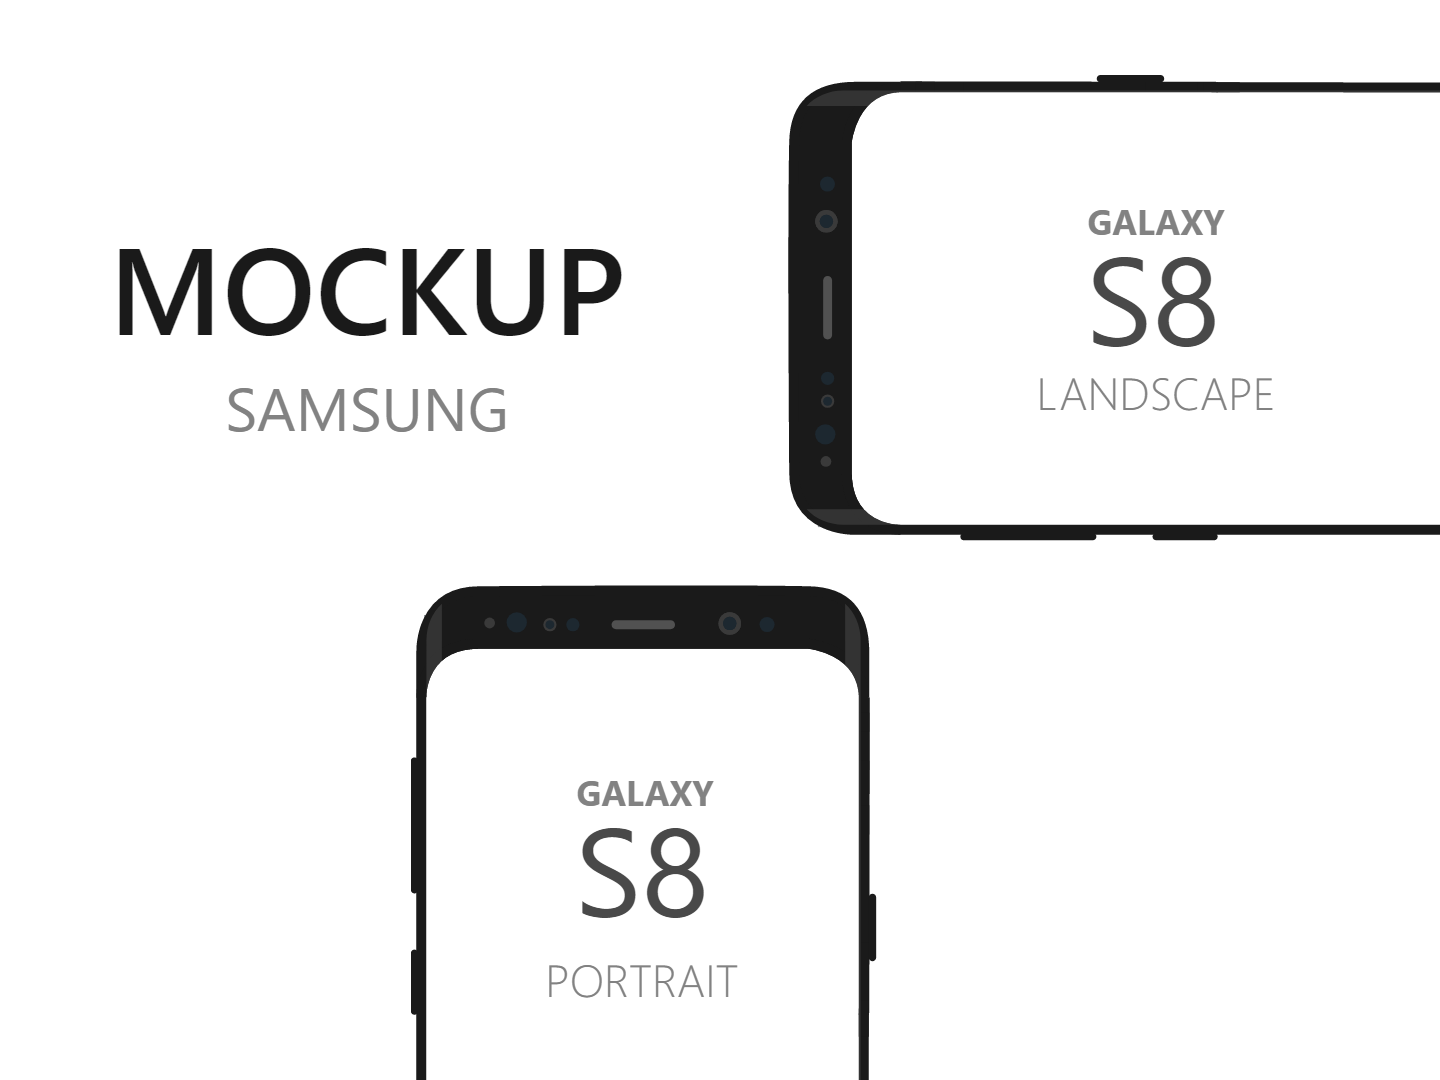 Samsung Galaxy S8 Device Mockup in SVG Format - Free Download Vector